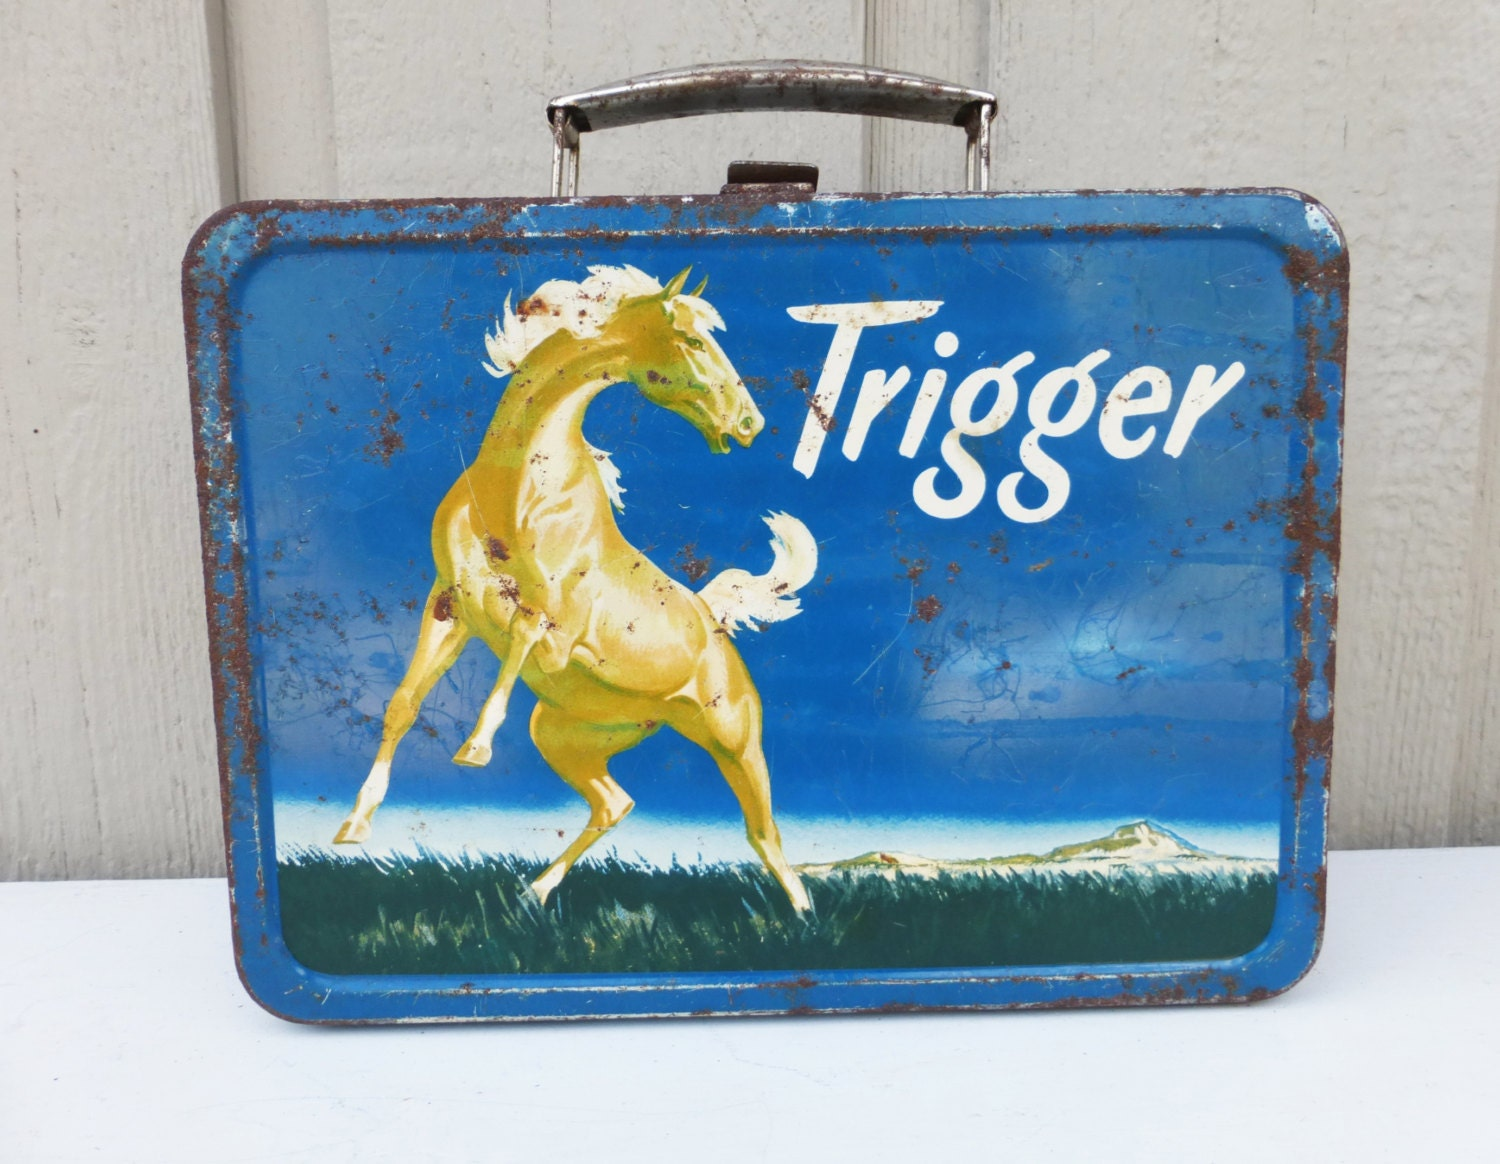 Trigger Lunch Box, 1950s